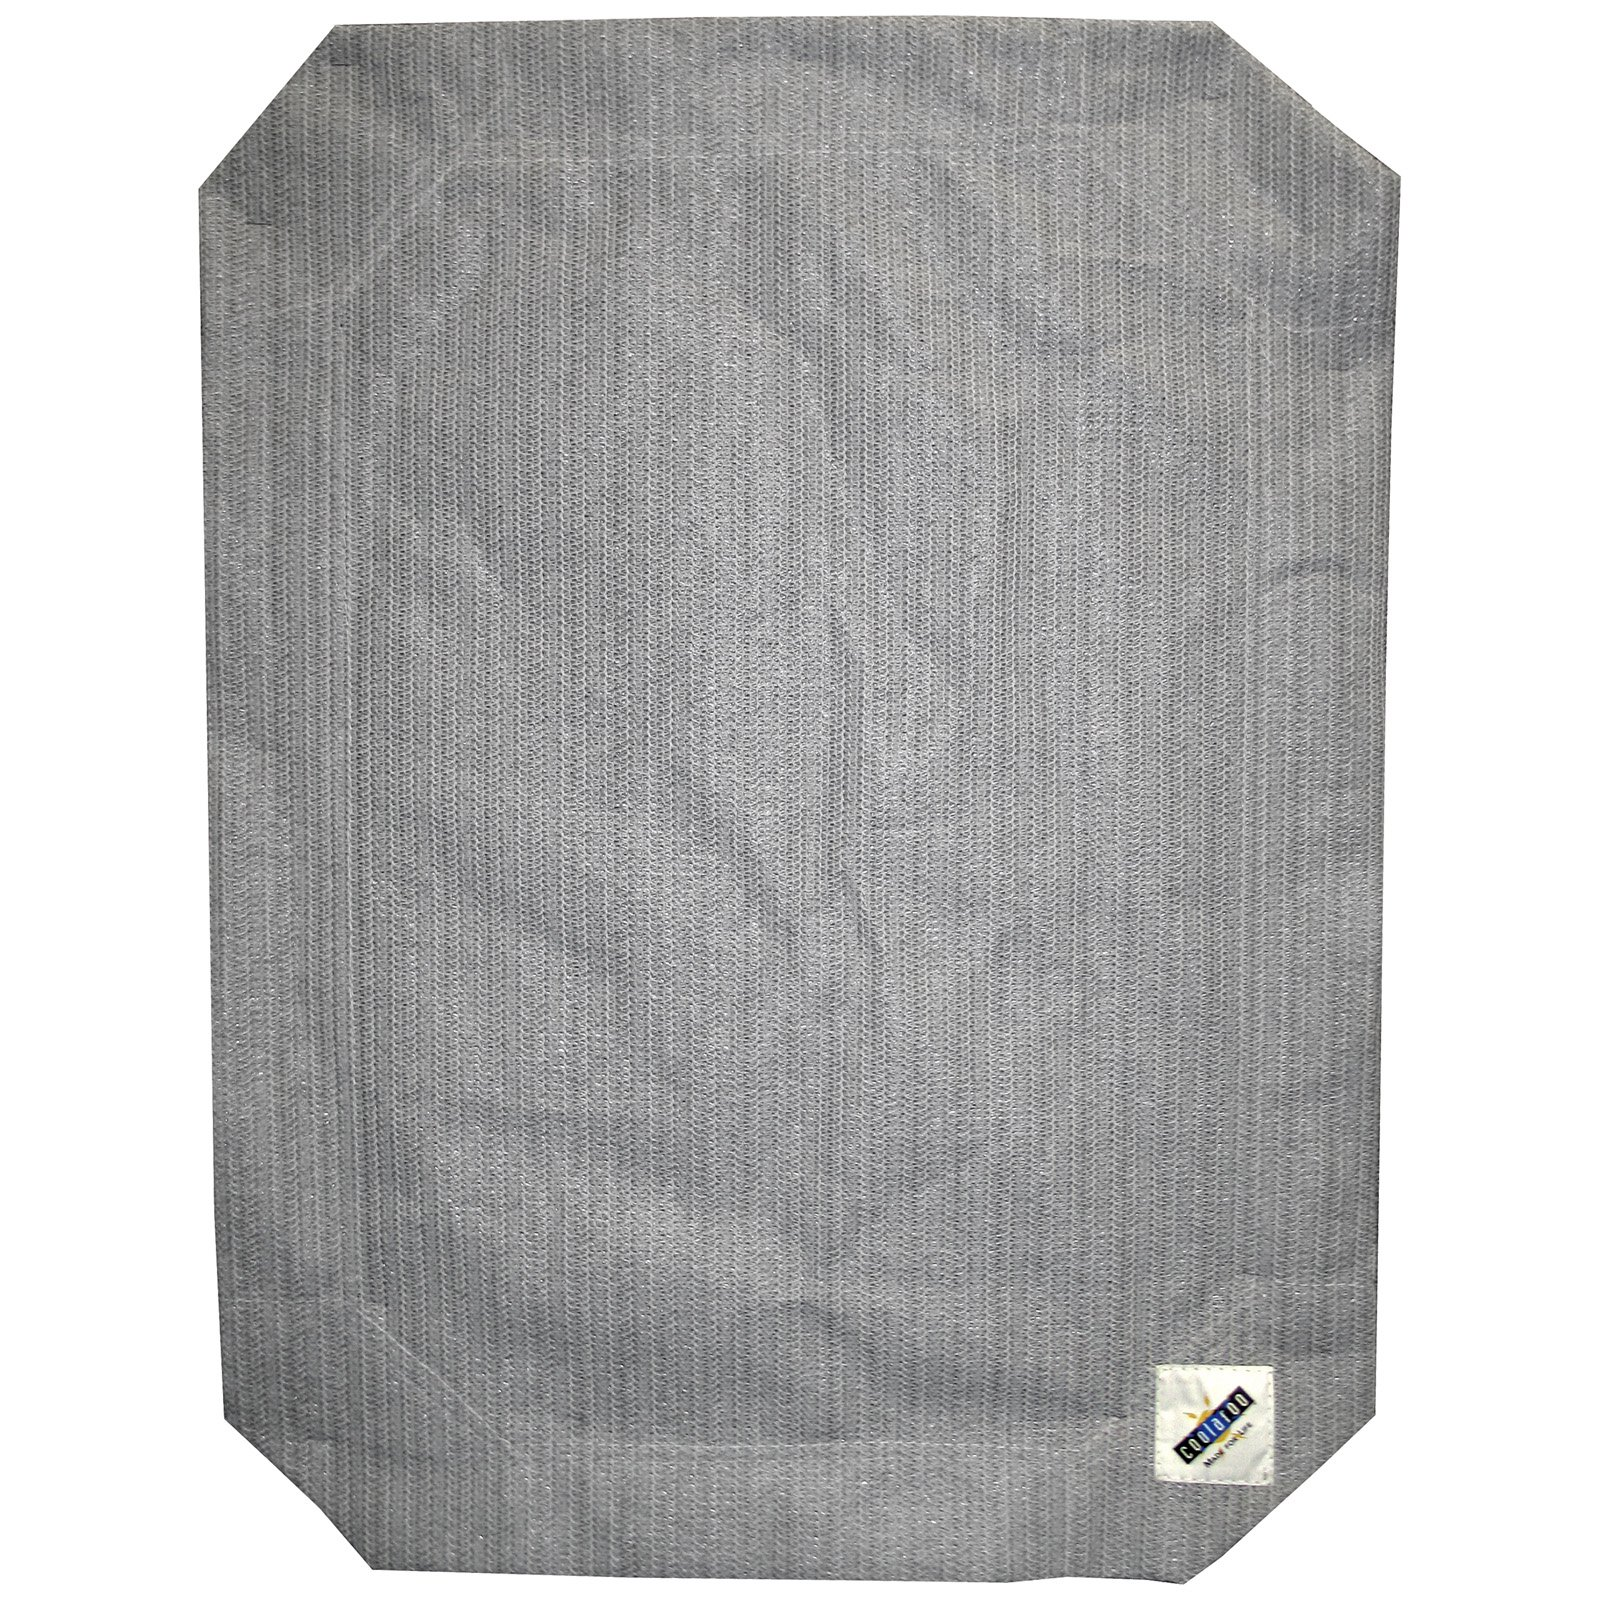 Coolaroo Replacement Dog Bed Cover, X-Large, Gray